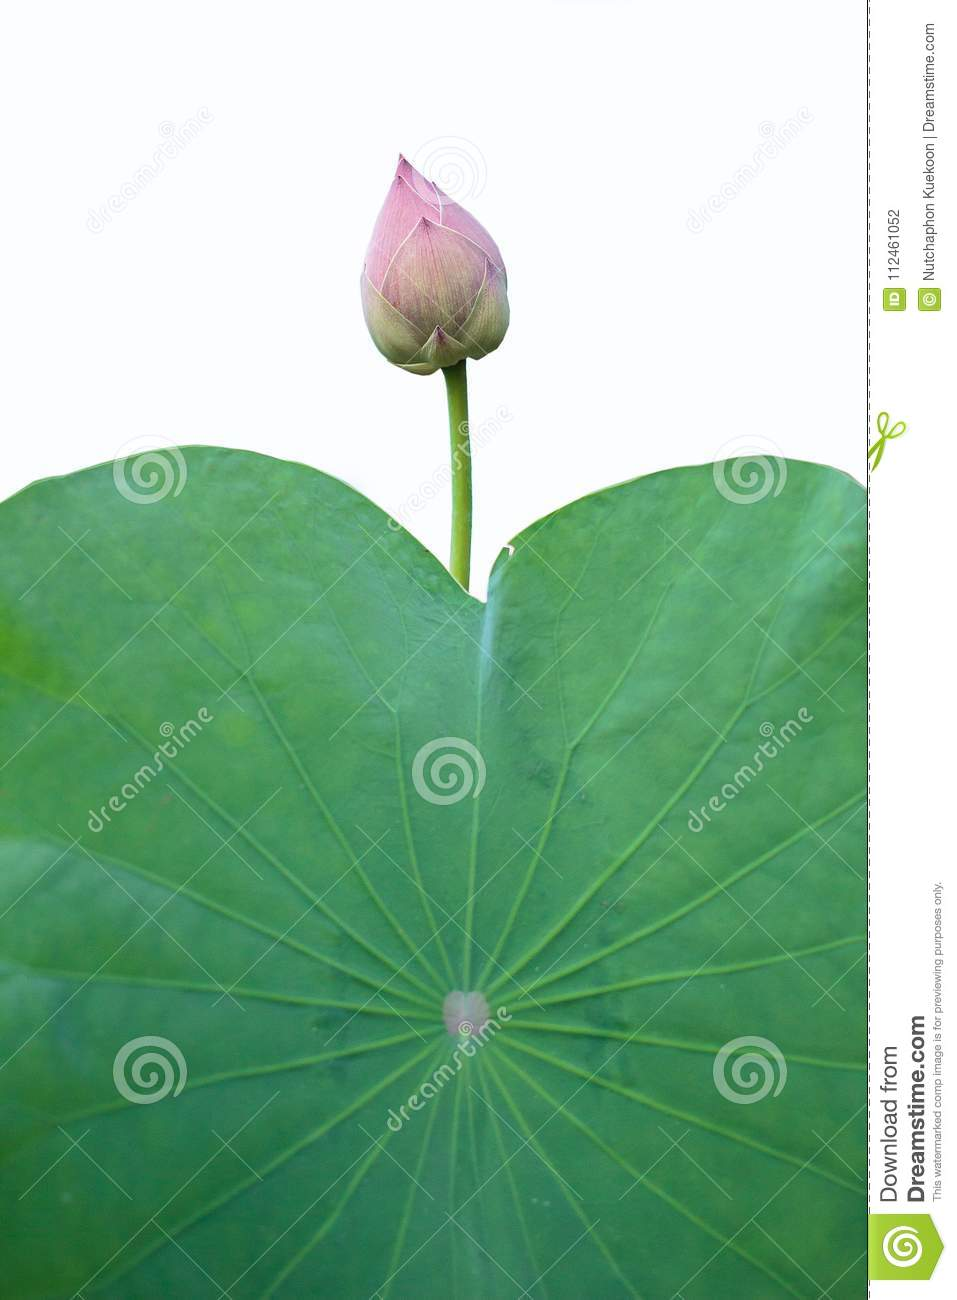 Lotus With The Meaning Of Buddhism Stock Photo Image Of Lagoon